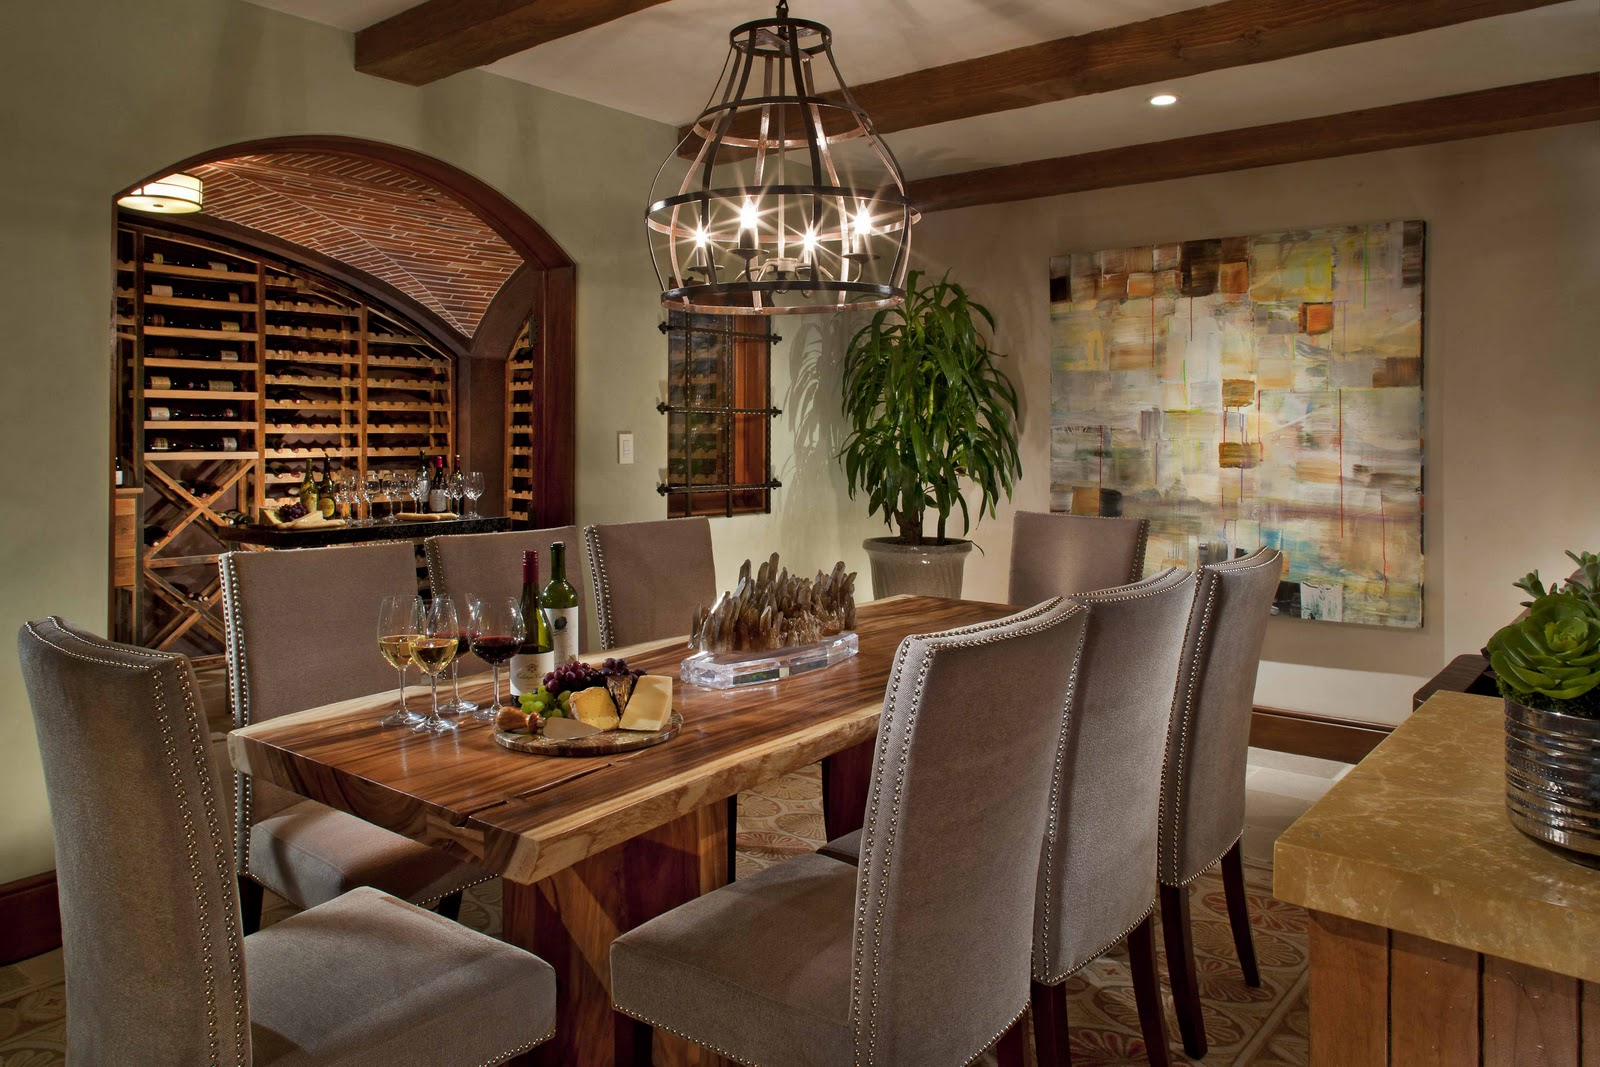 Unique Wine Cellar Designs Inside Your House: Wine Cellar With Dining Room